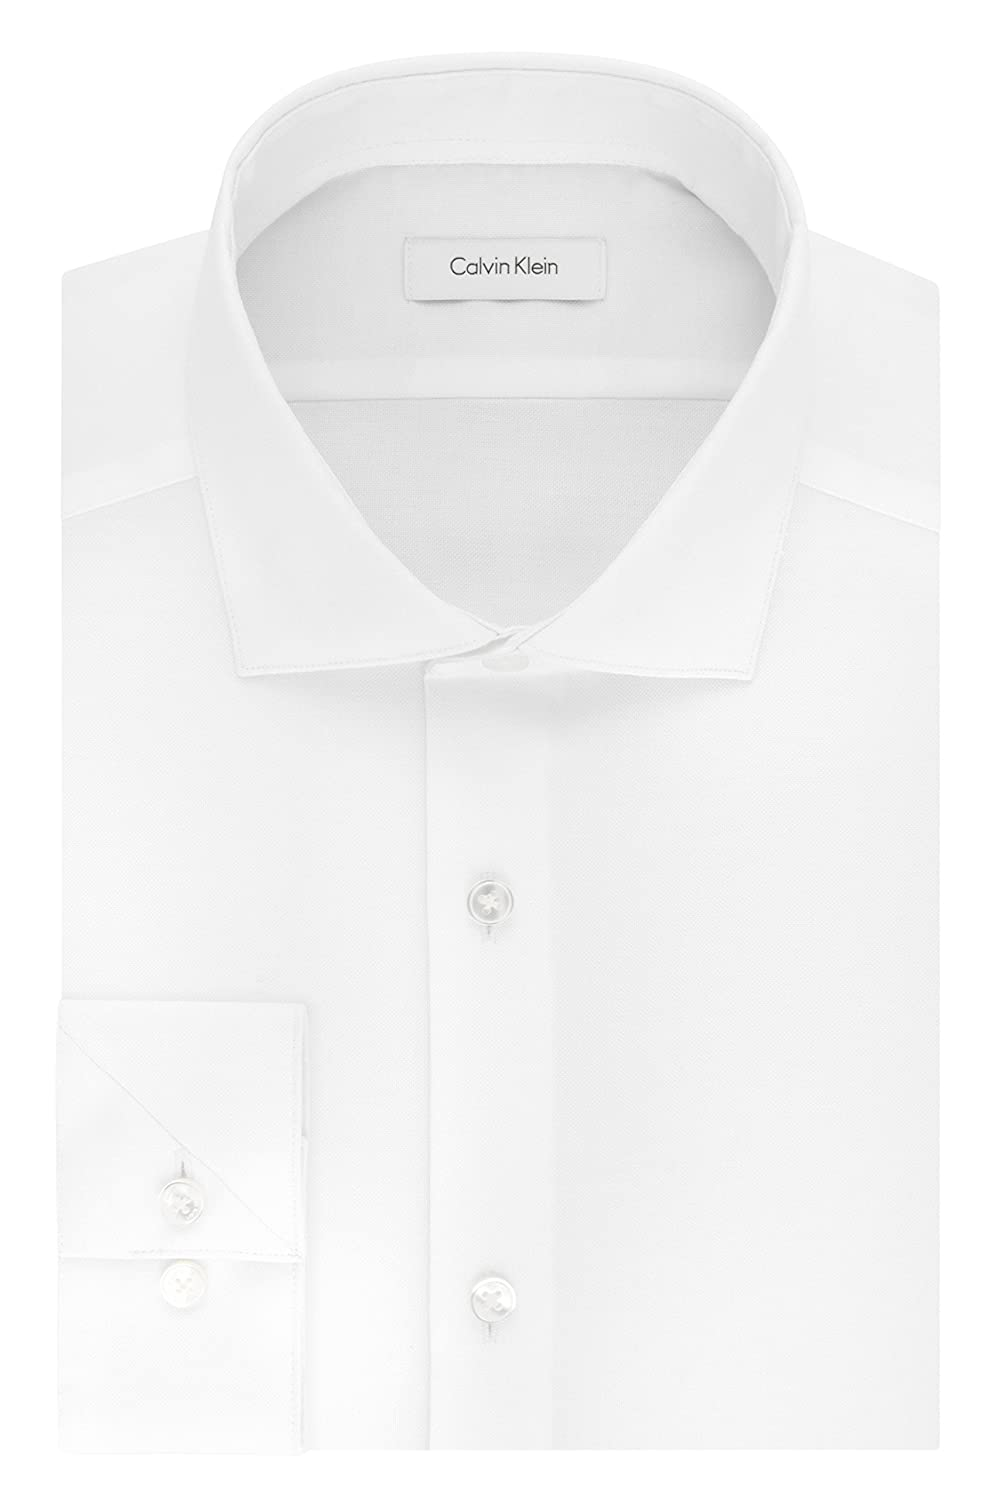 Calvin Klein Men's Non Iron Stretch Slim Fit Dress Shirt by Calvin+Klein